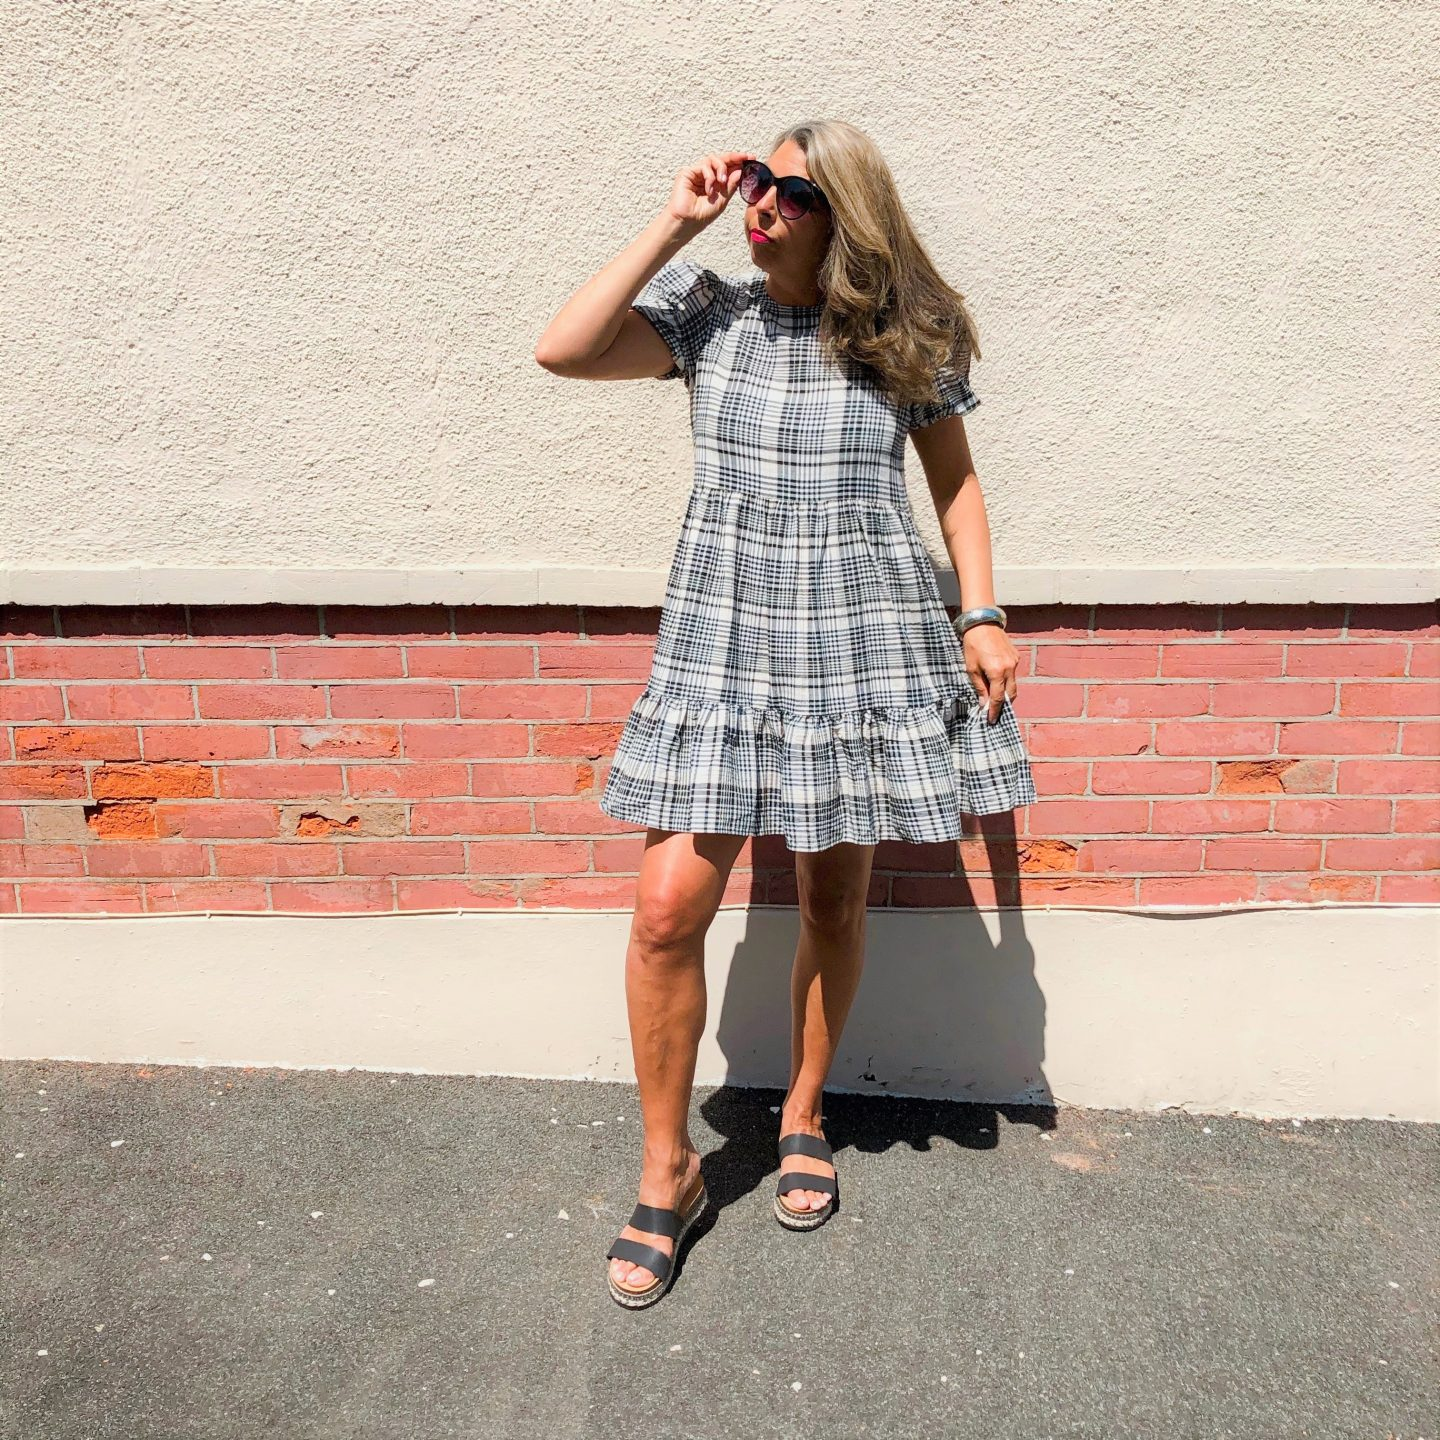 THE SMOCK DRESS: HOW TO STYLE SO IT WORKS FOR YOU